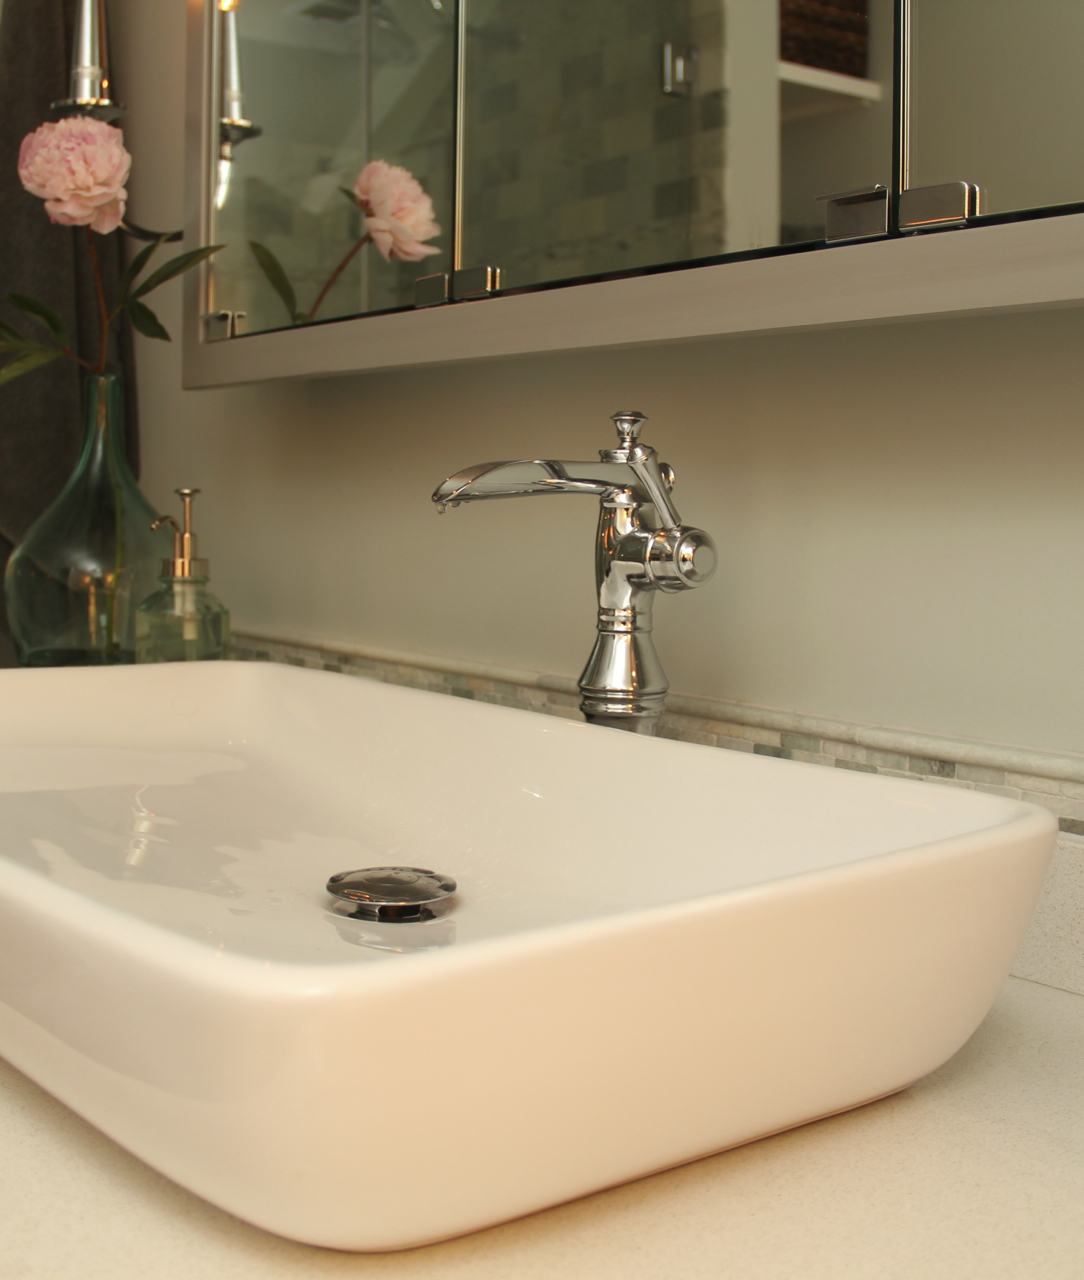 masterbathroom-asimplerdesign-vessel sink.jpg